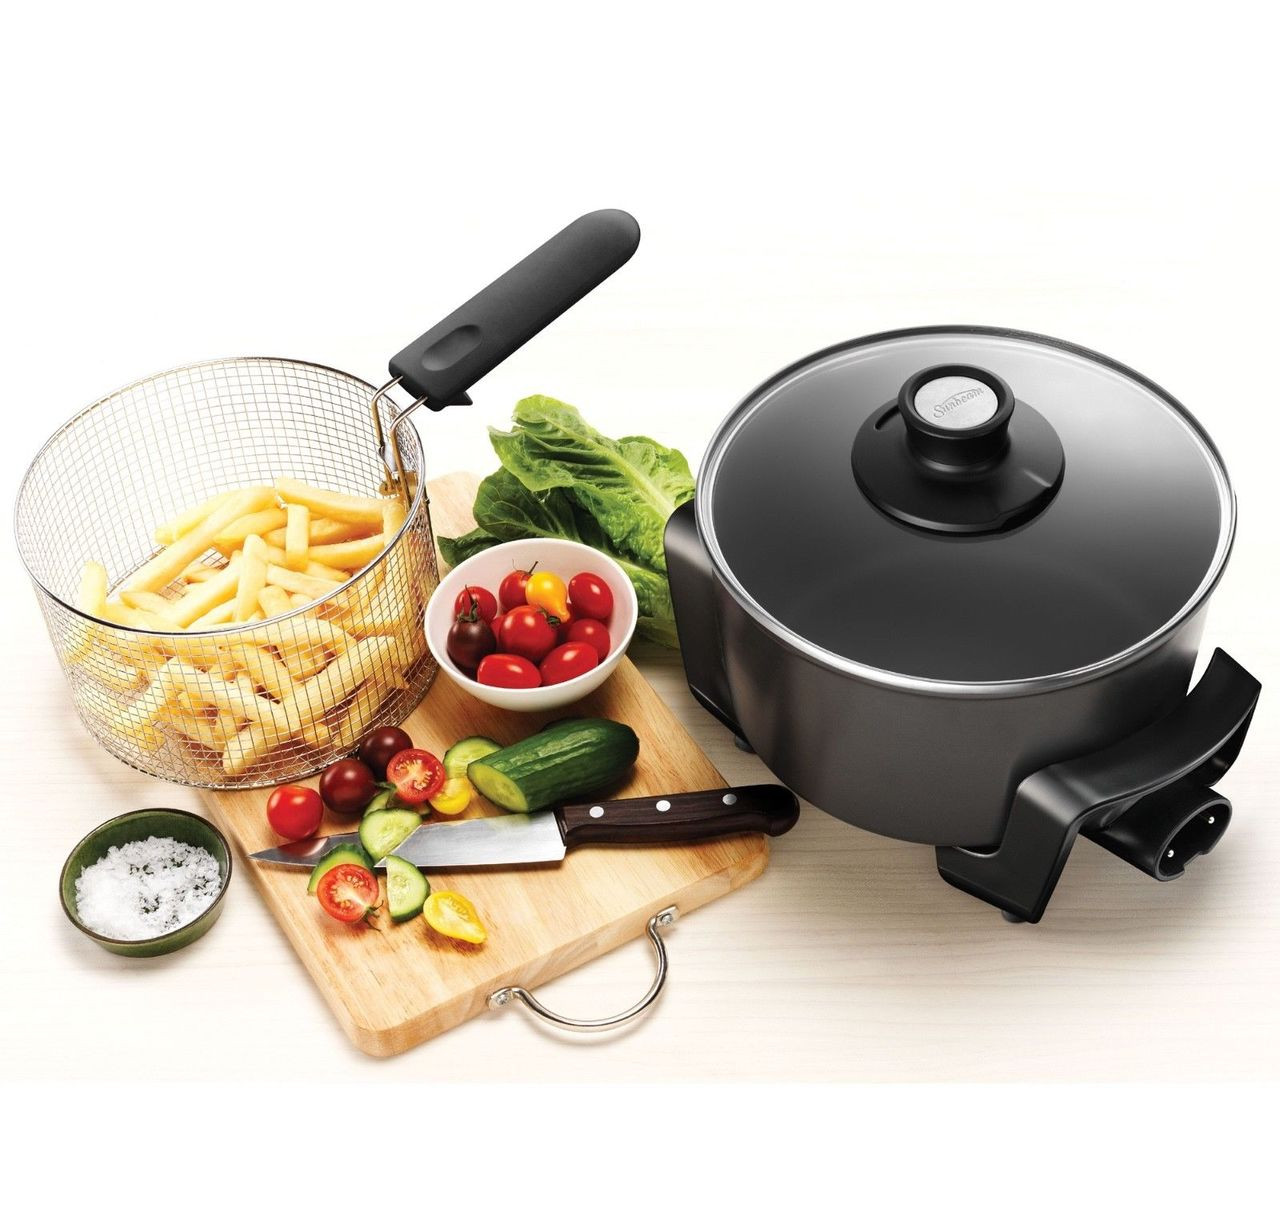 Sunbeam DF4500 MultiCooker Deep Fryer -Use as saucepan, small frypan, deep fryer